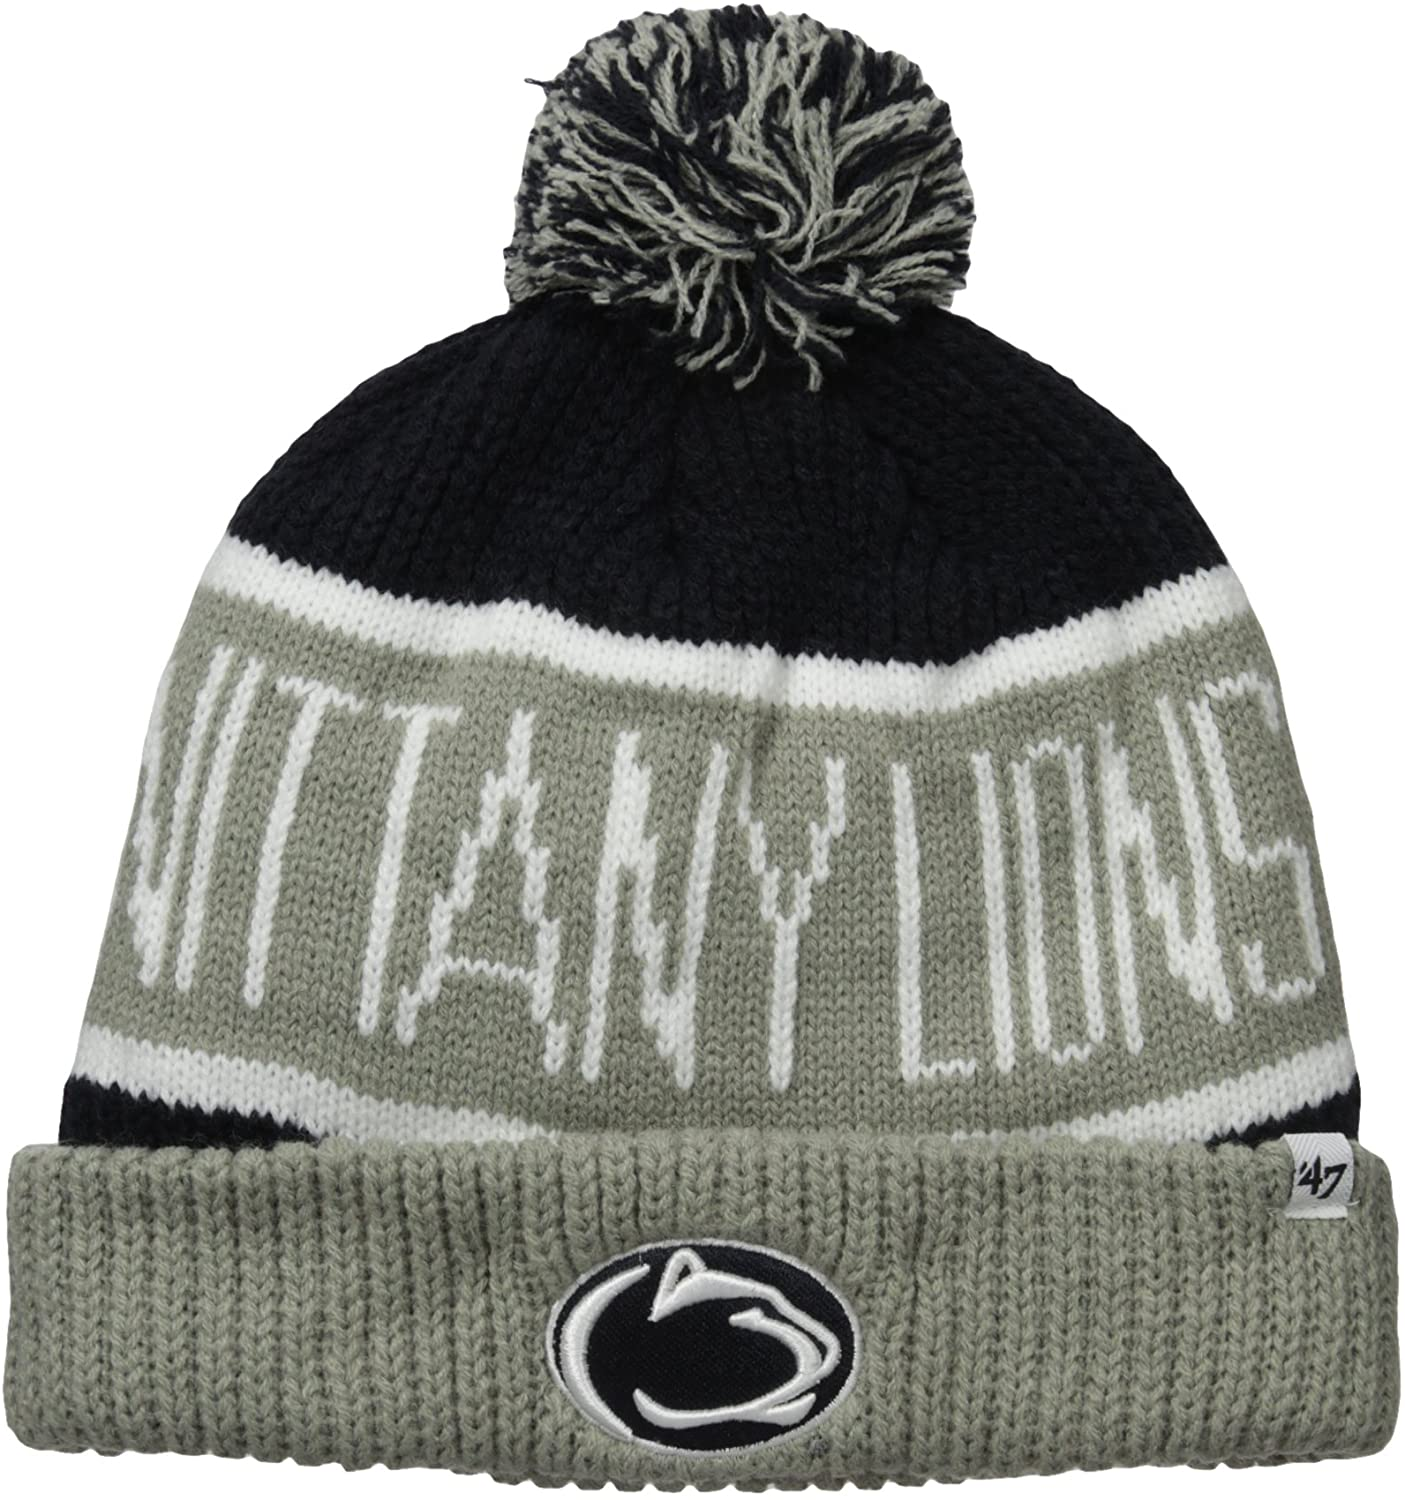 '47 NCAA Unisex-Adult Calgary Cuff Knit Hat